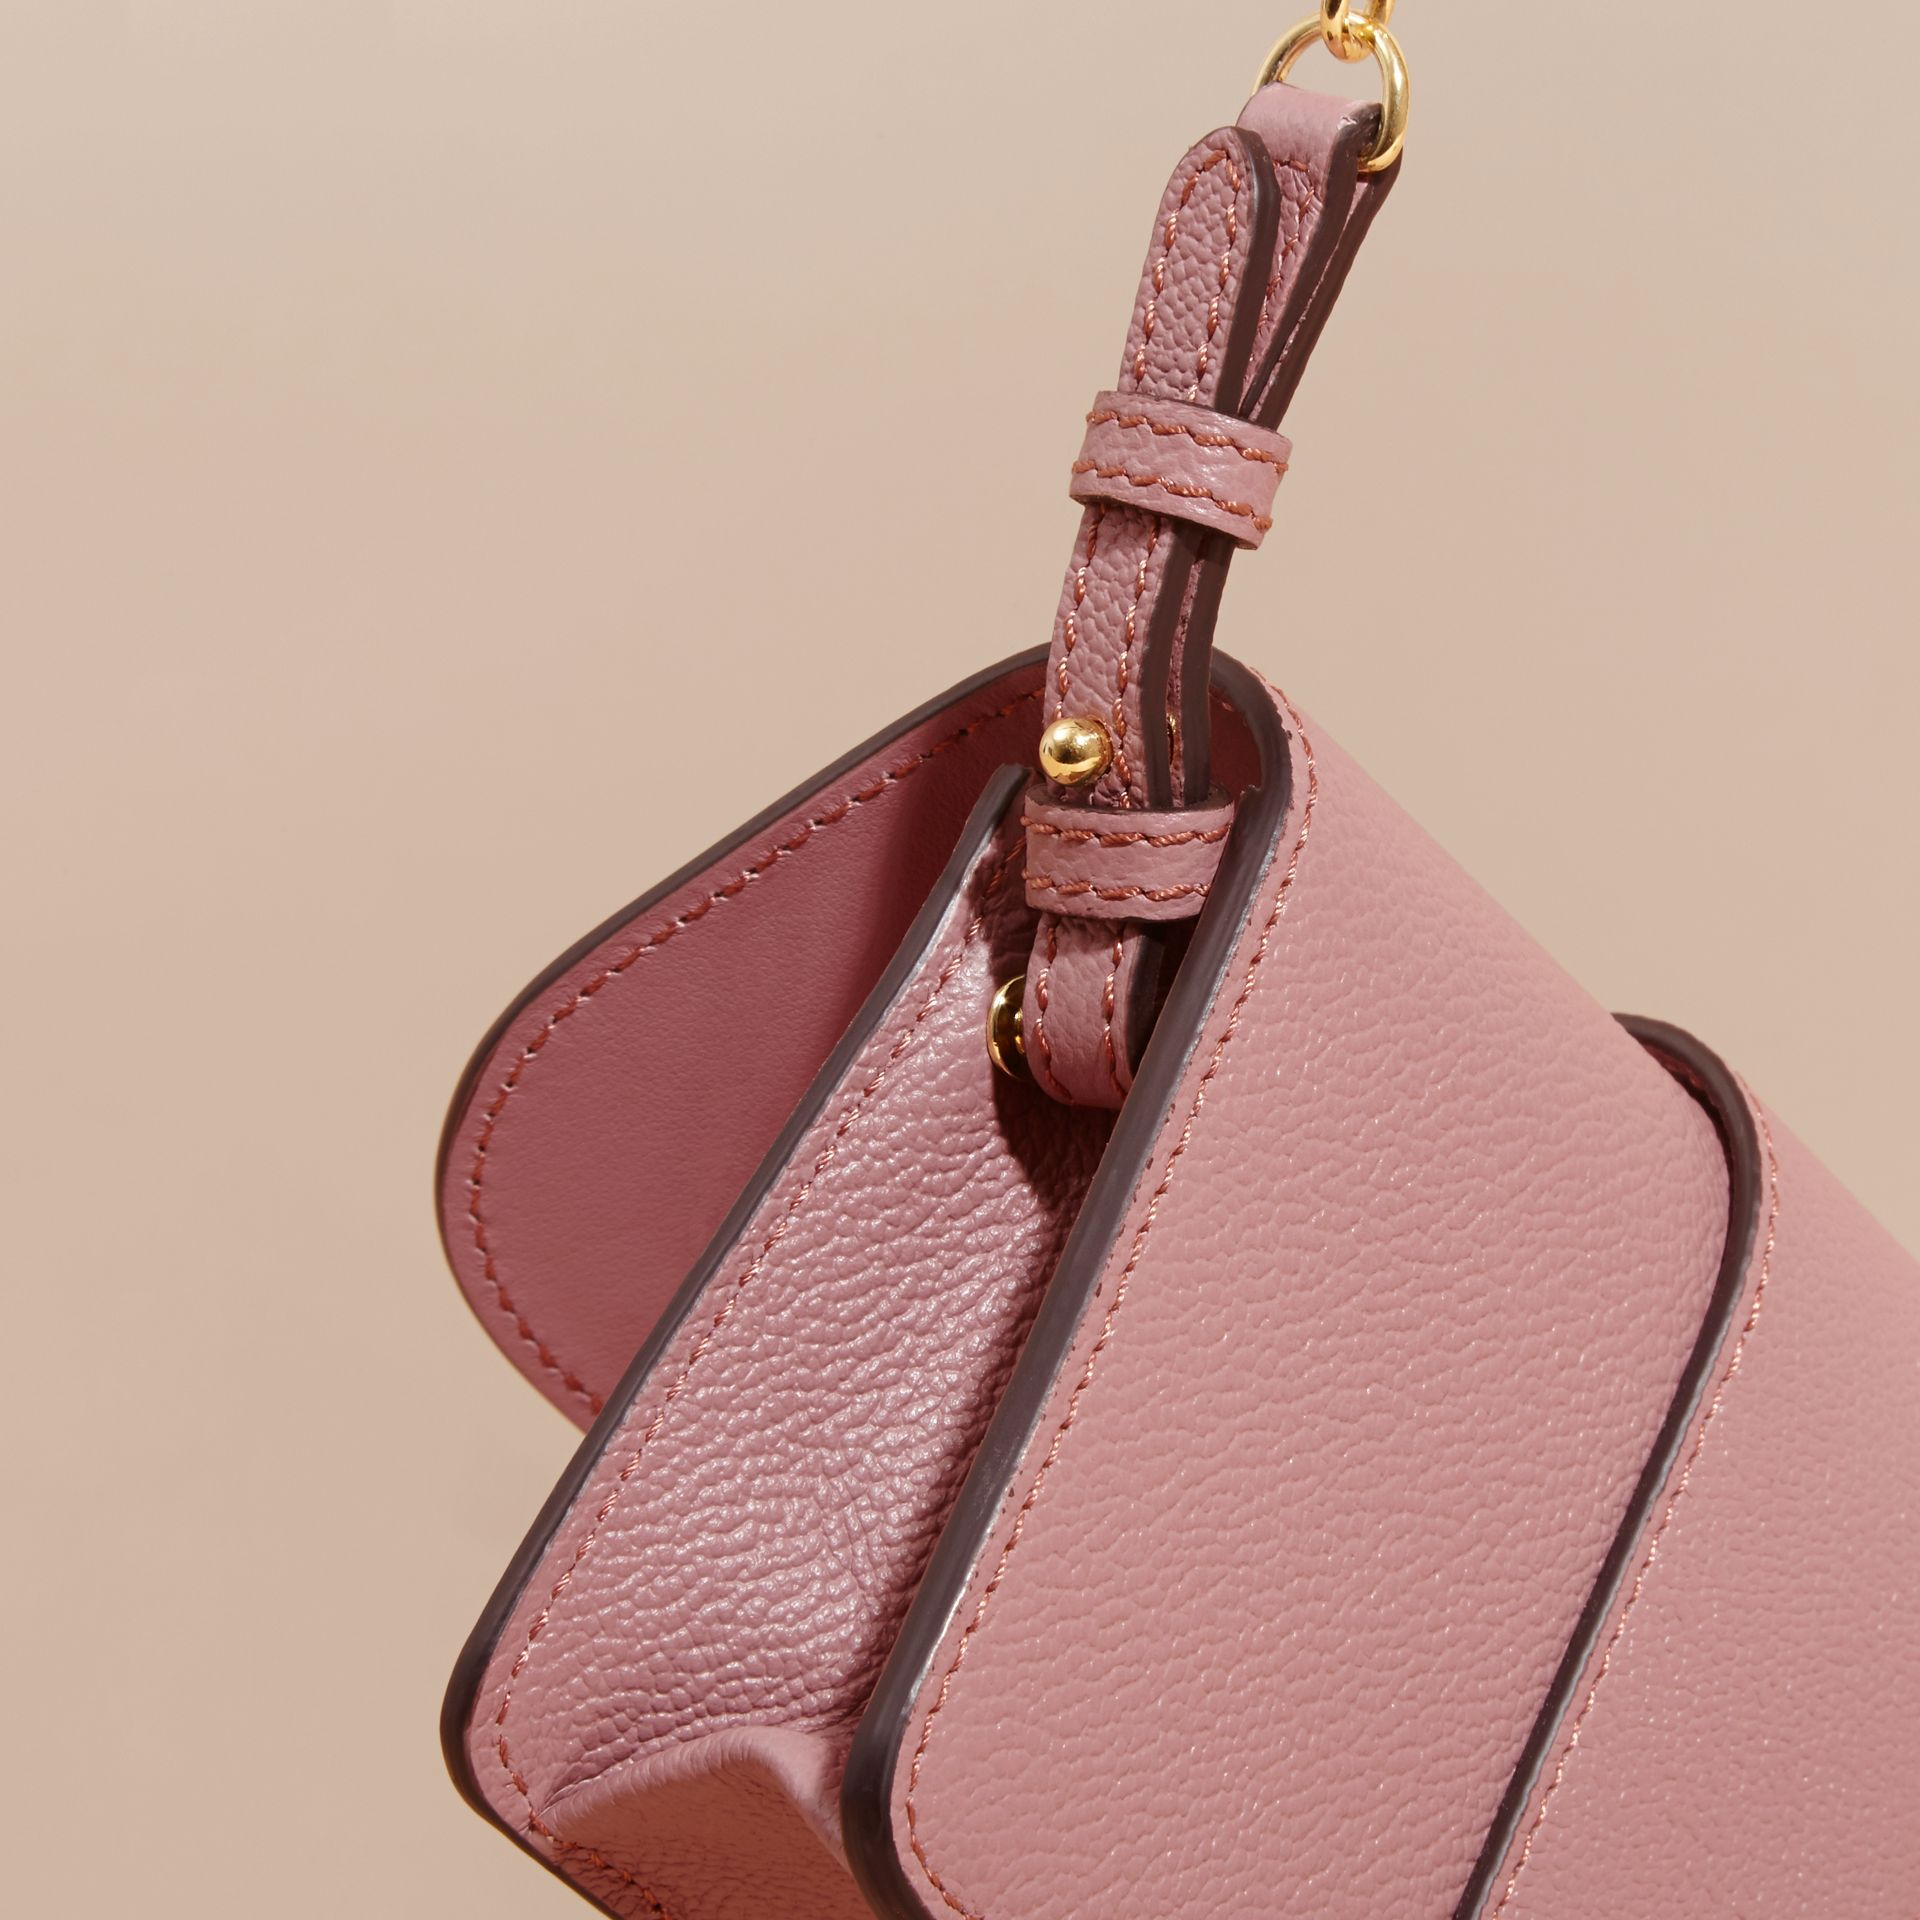 Borsa The Buckle mini in pelle a grana (Rosa Polvere) - Donna | Burberry - immagine della galleria 7